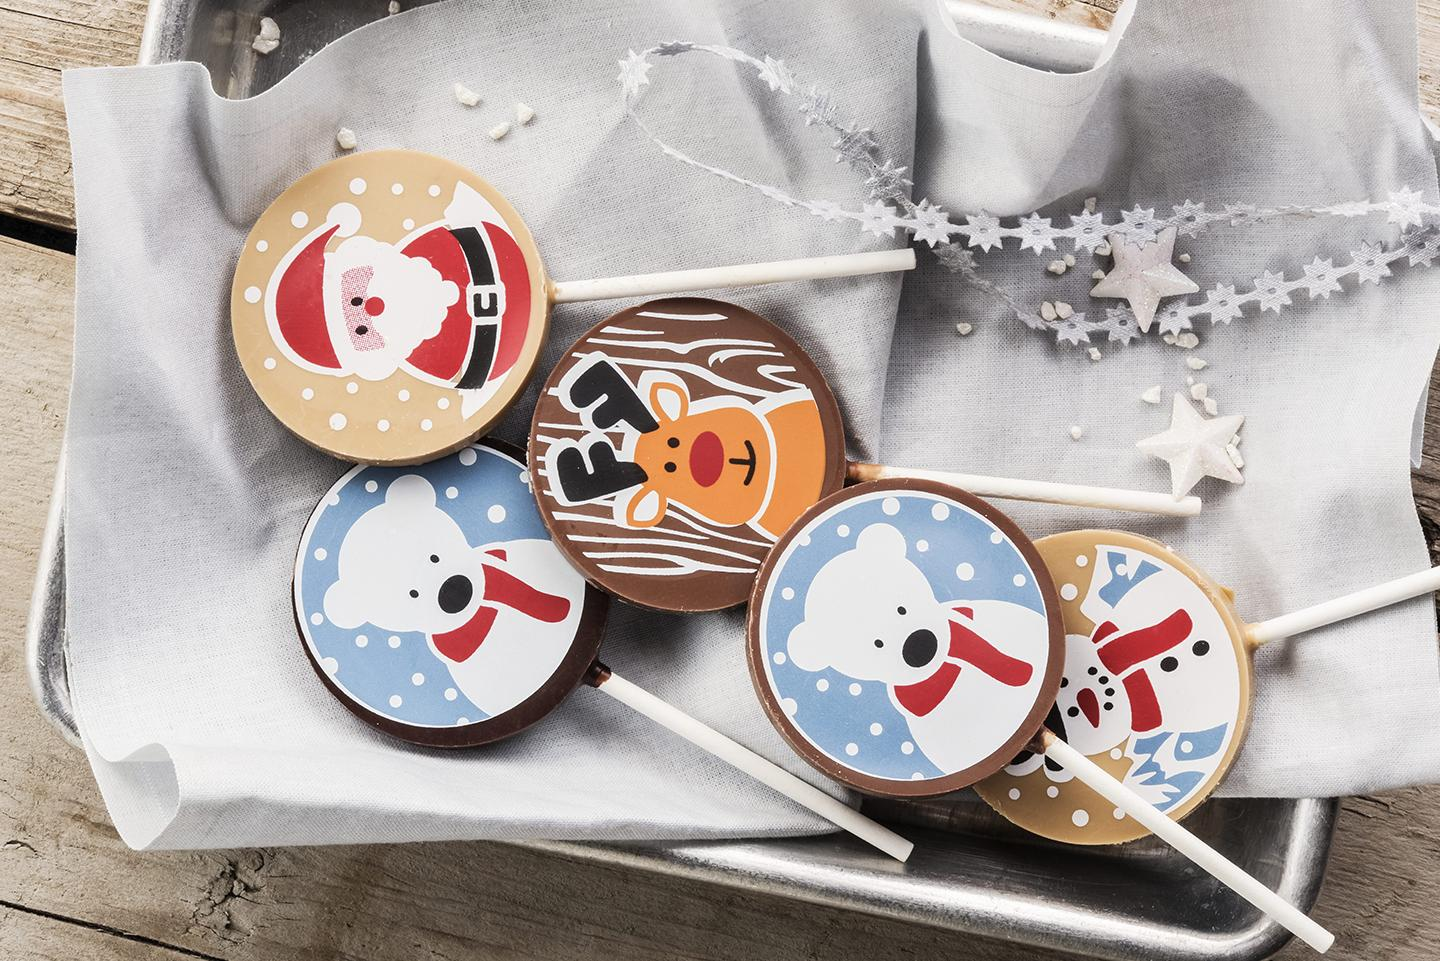 BCFM - Applications - Confectionery - Lollypops - Chocolate - Transfer Sheets - CHRISTMAS LOLLIES-1371